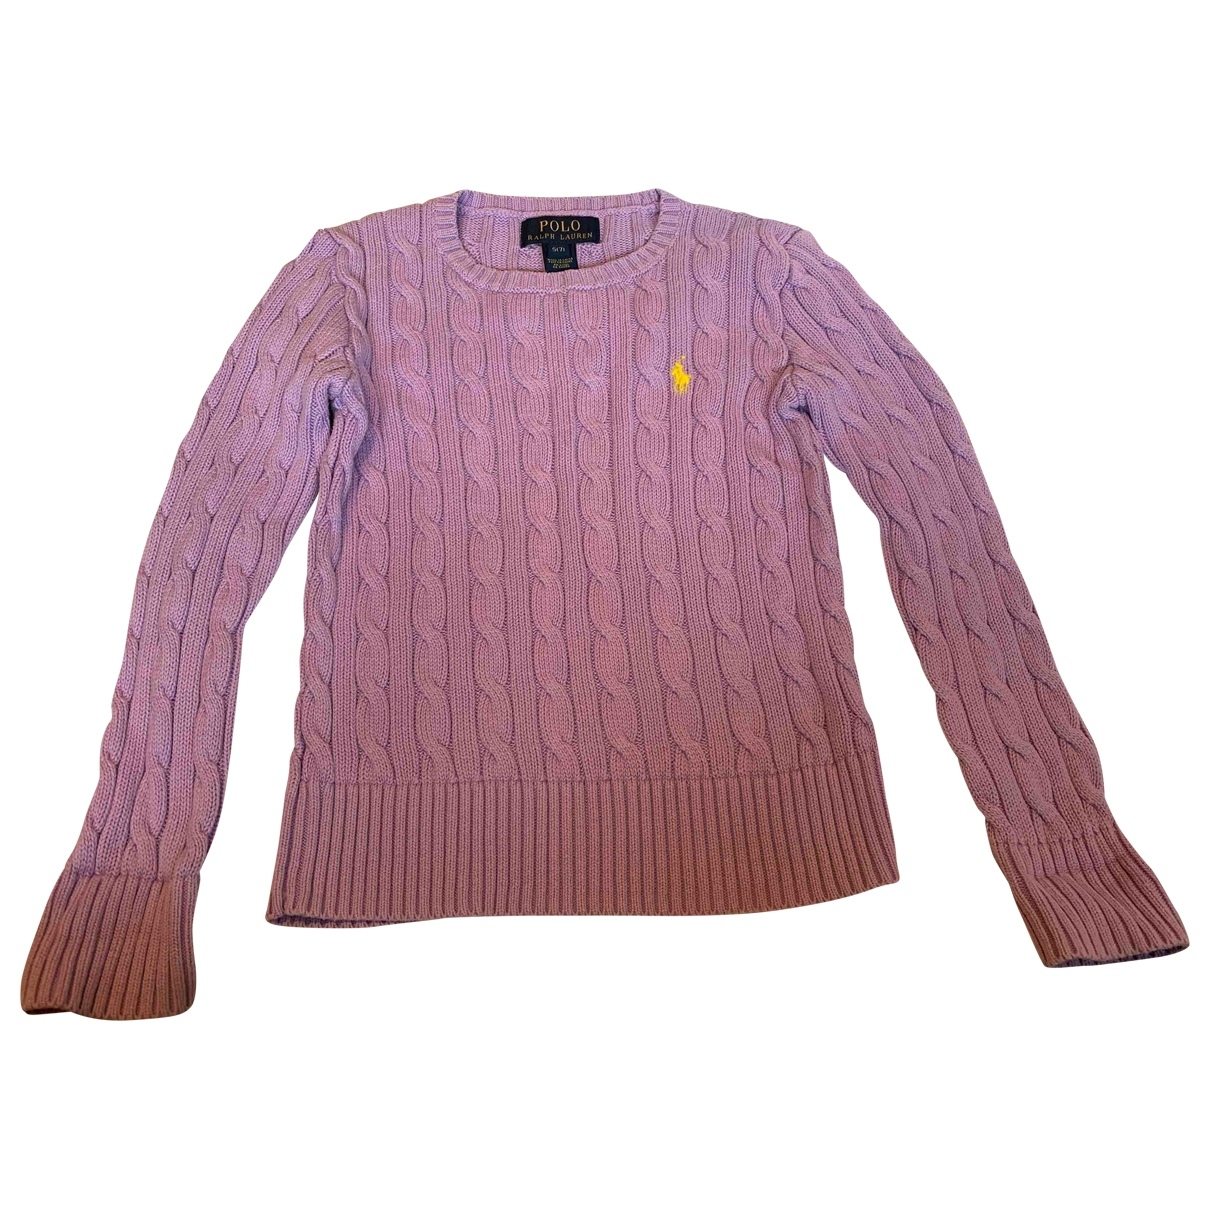 Polo Ralph Lauren \N Cotton Knitwear for Kids 8 years - until 50 inches UK